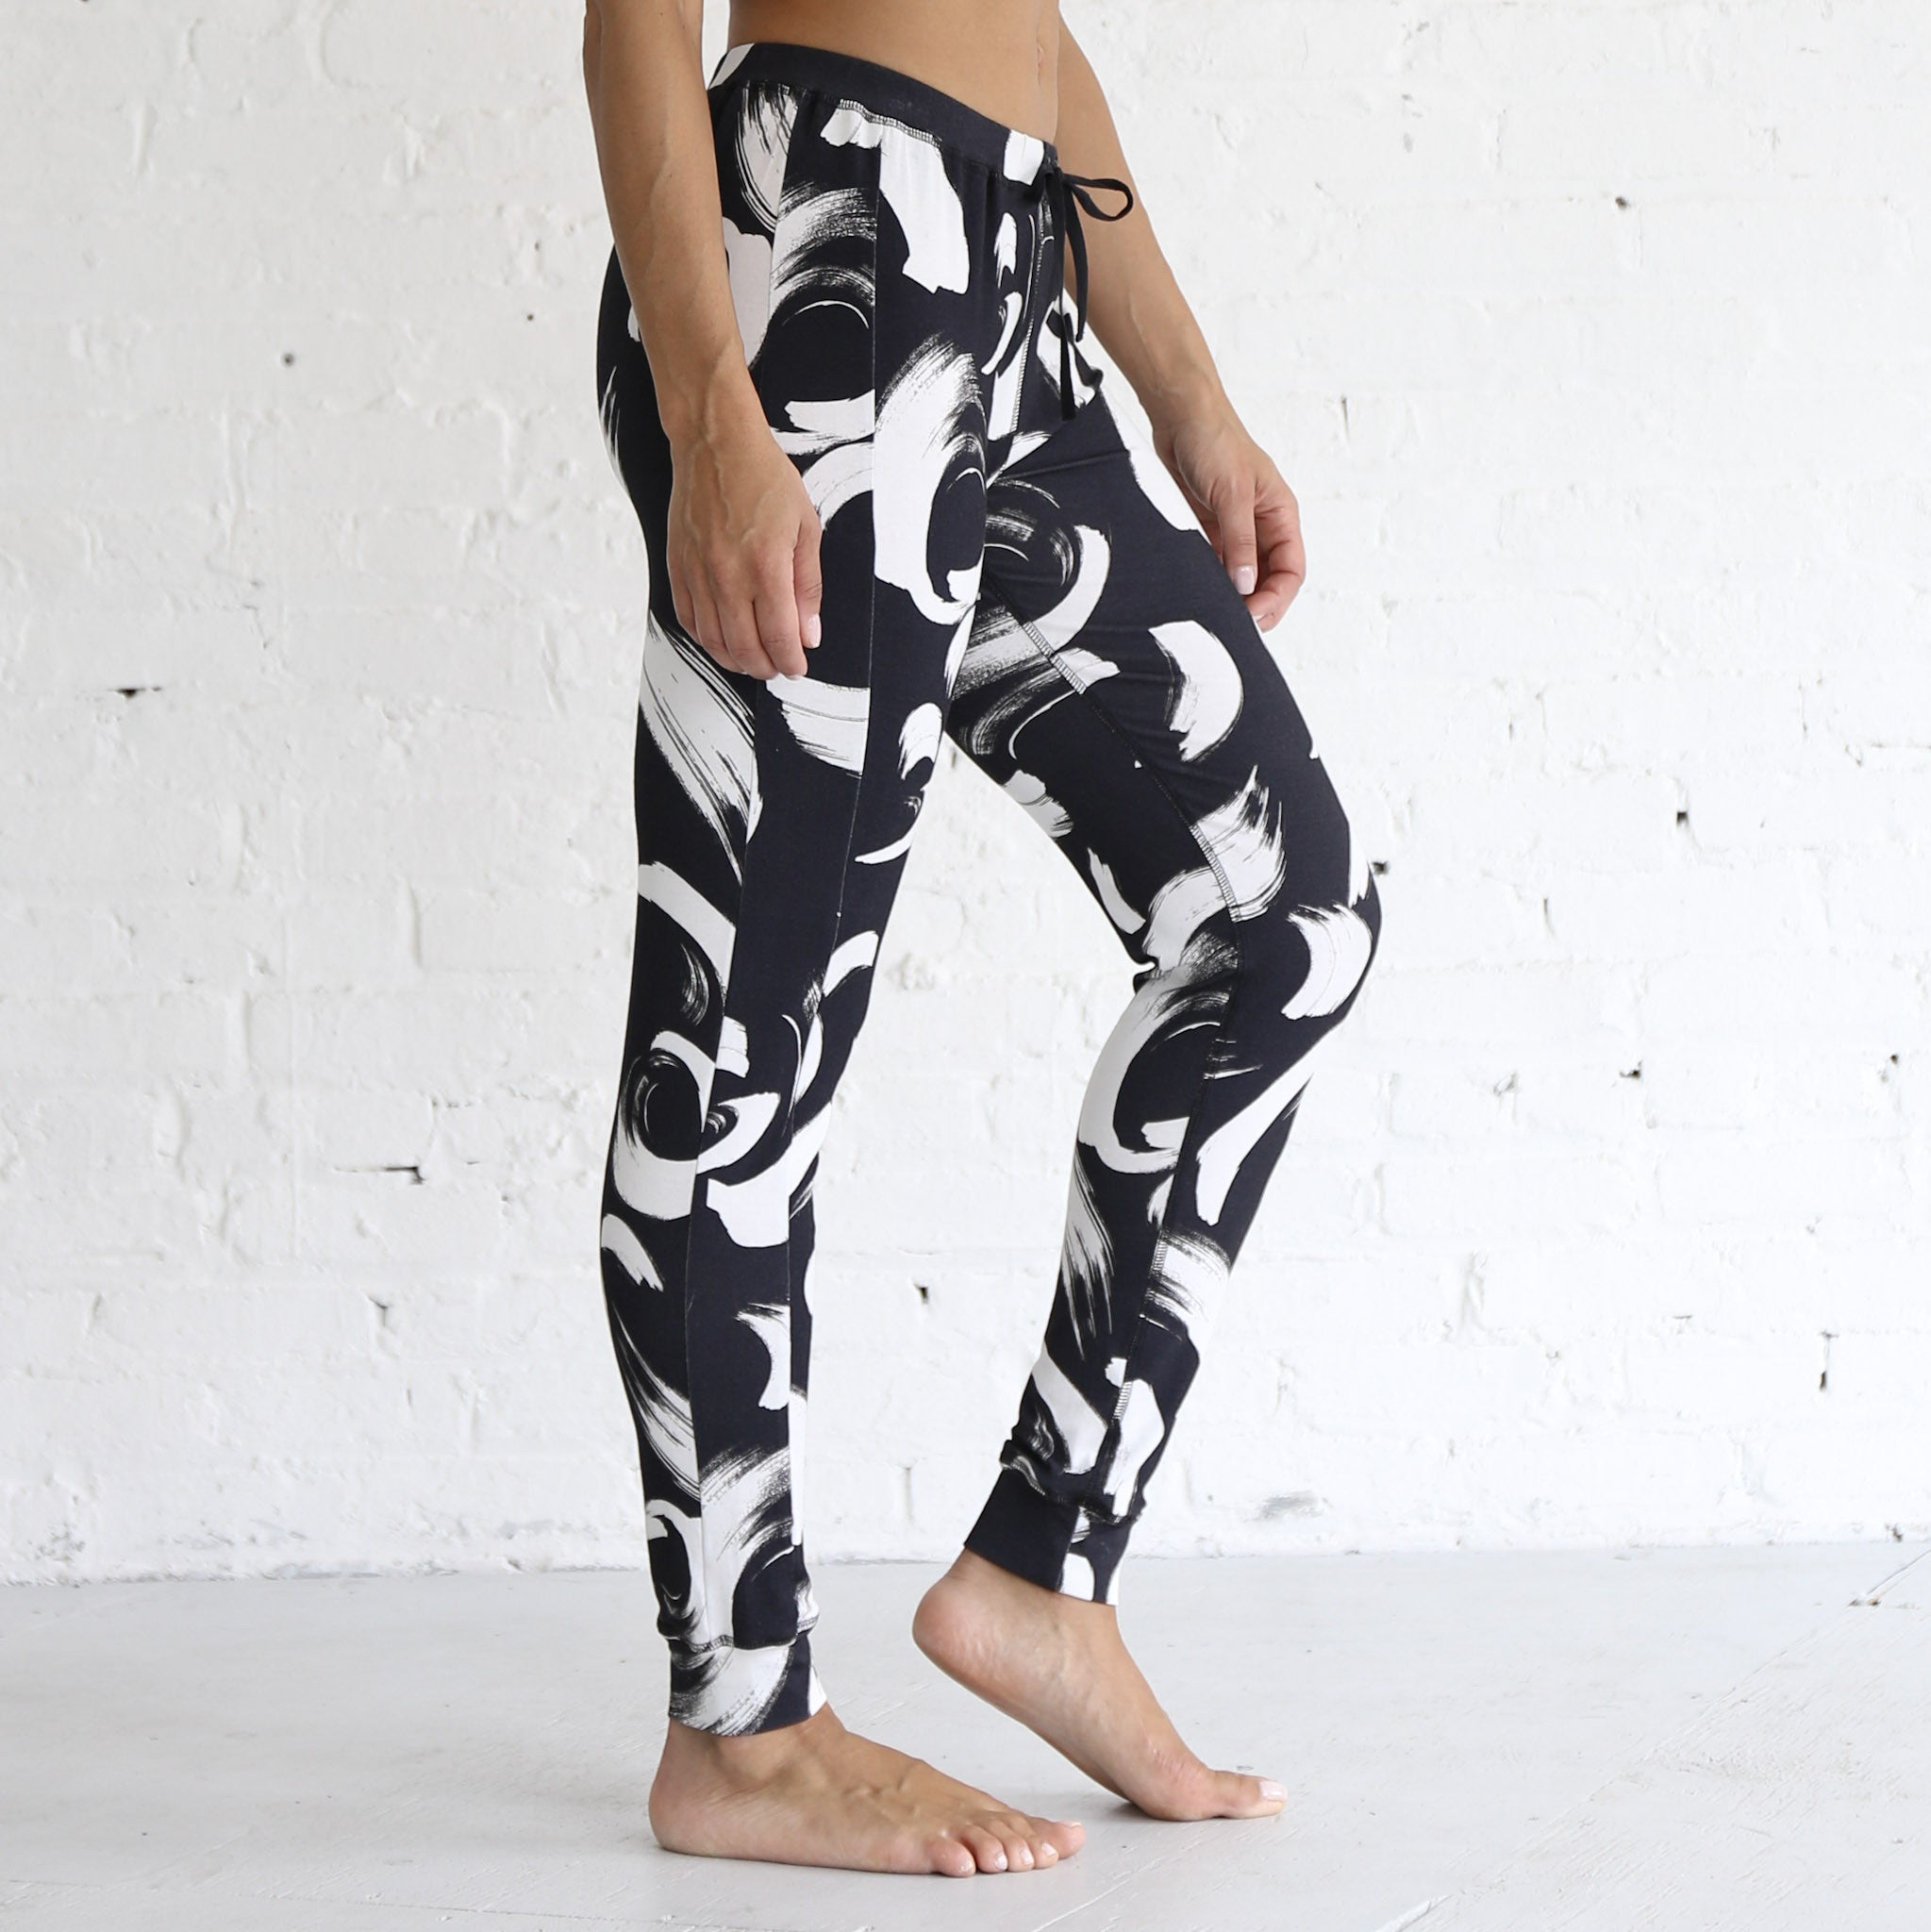 Jogger Pants in Black & White Paintbrush